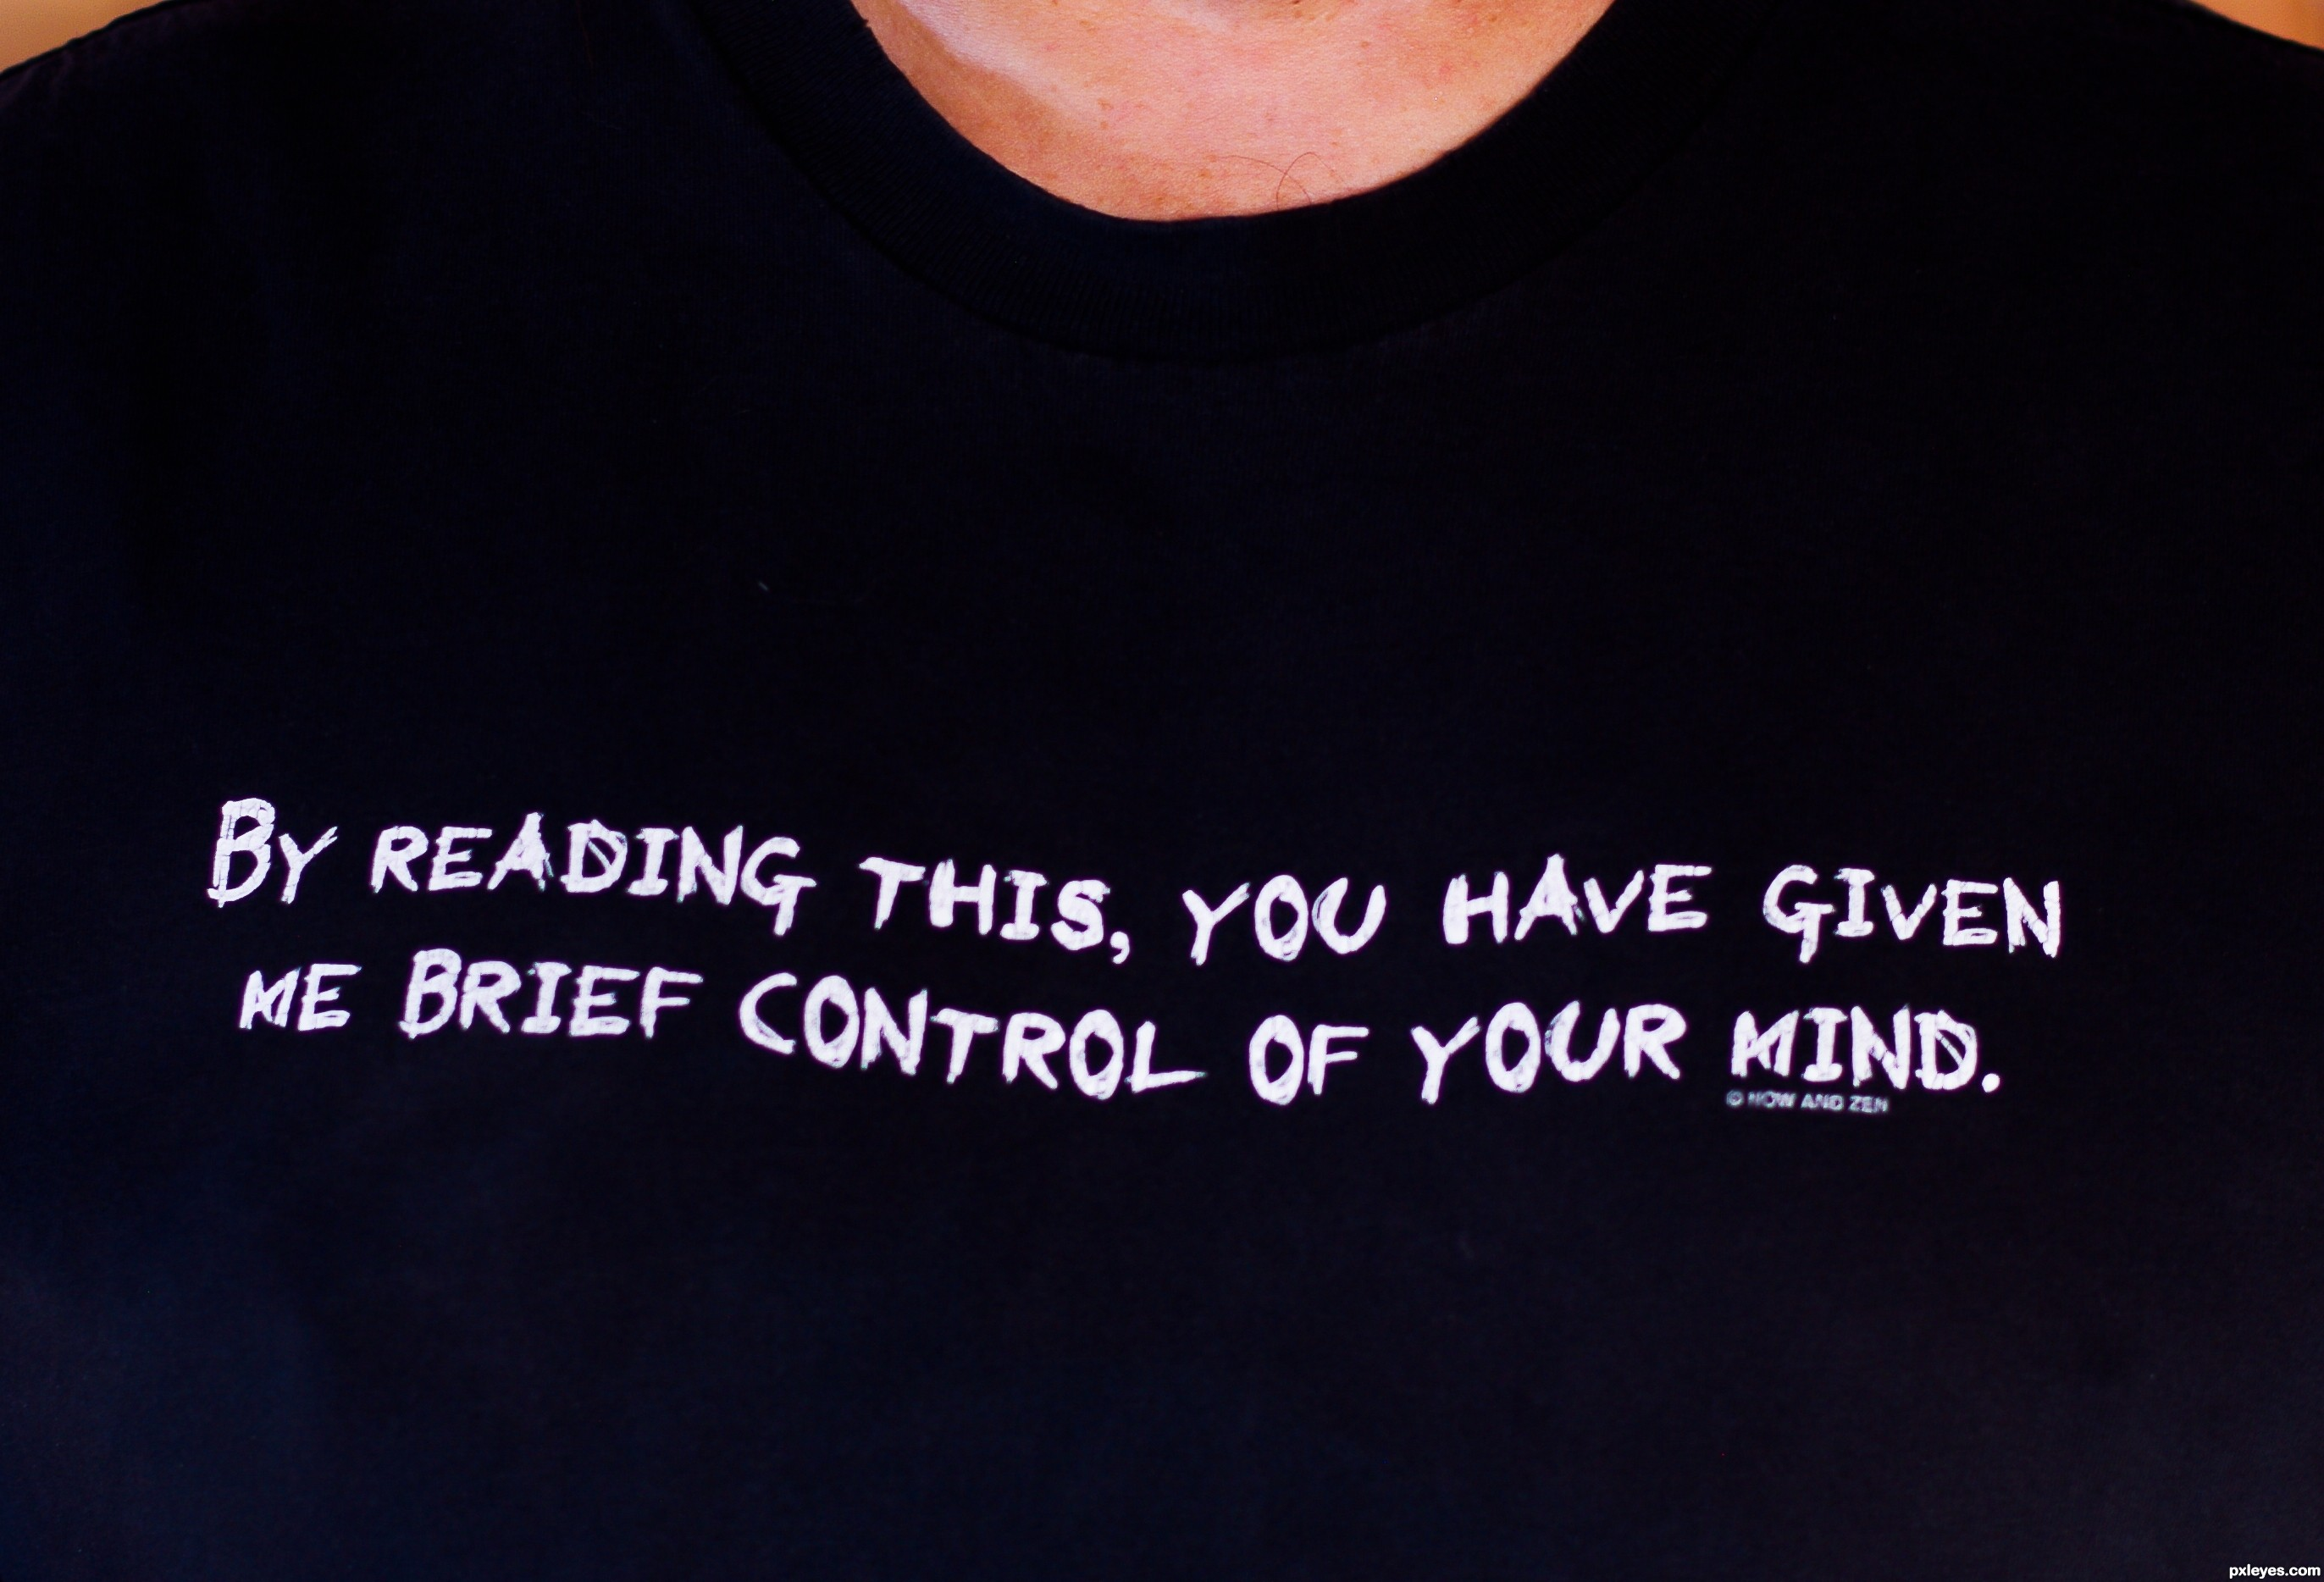 Mind control picture by kyricom for tshirt messages photography contest pxleyes com